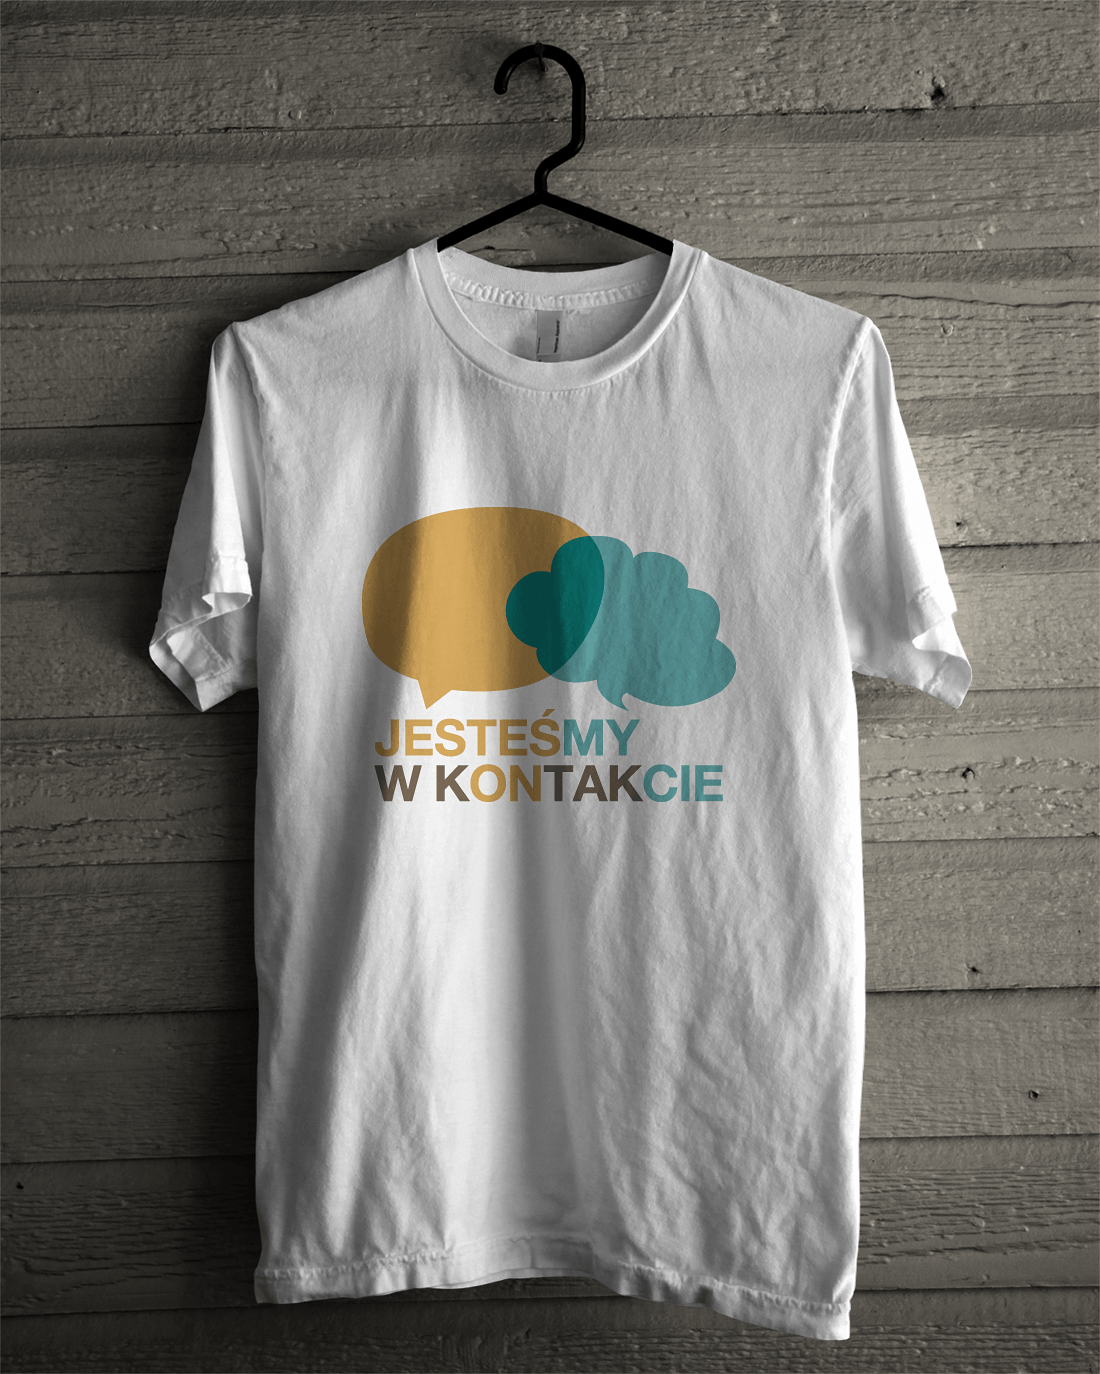 https://ponad.pl/wp-content/uploads/2015/01/contact-festival-t-shirt.png